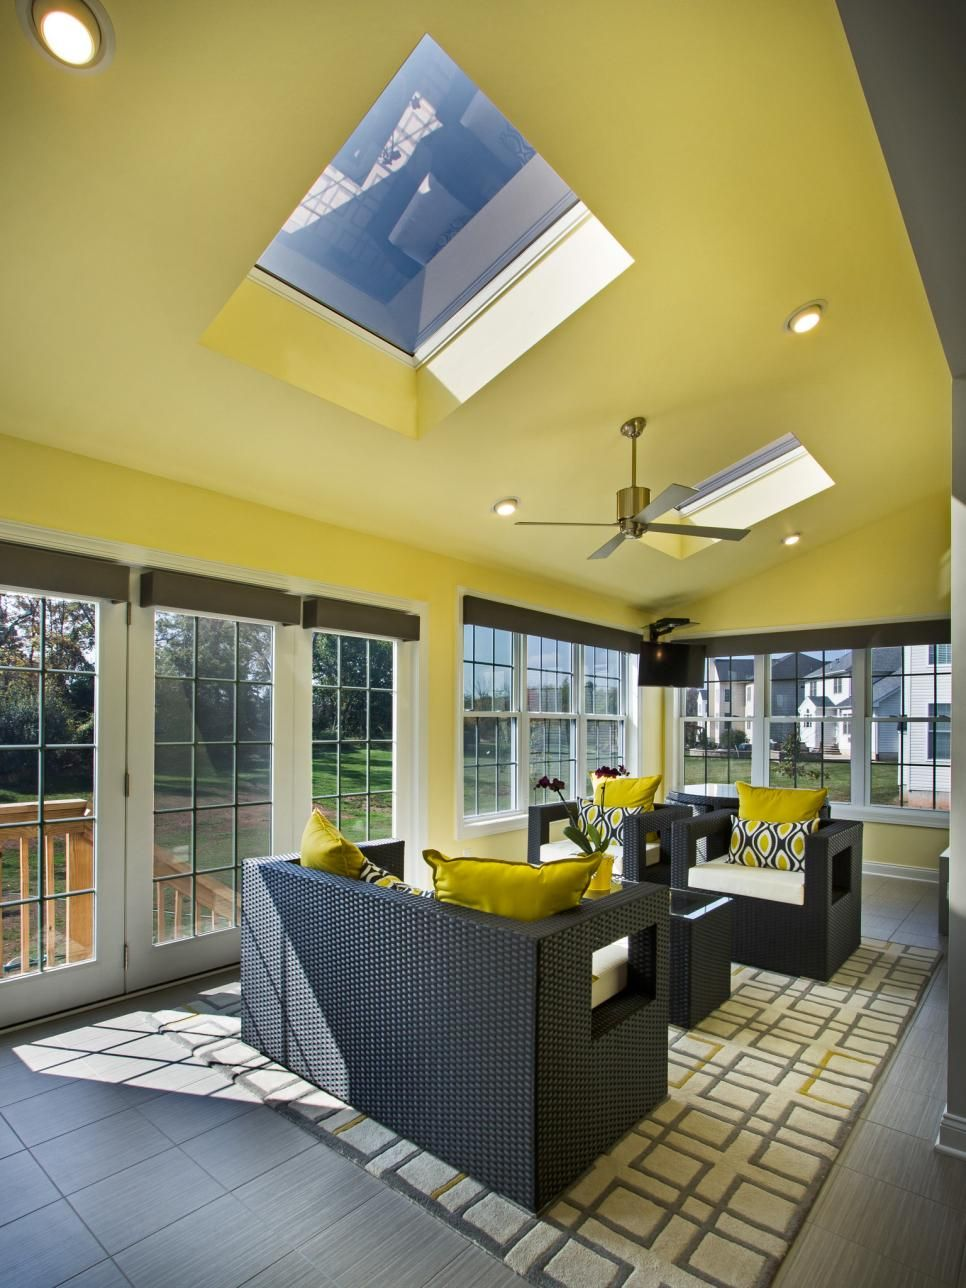 Canary Yellow Paint Covers The Walls And The Sloping